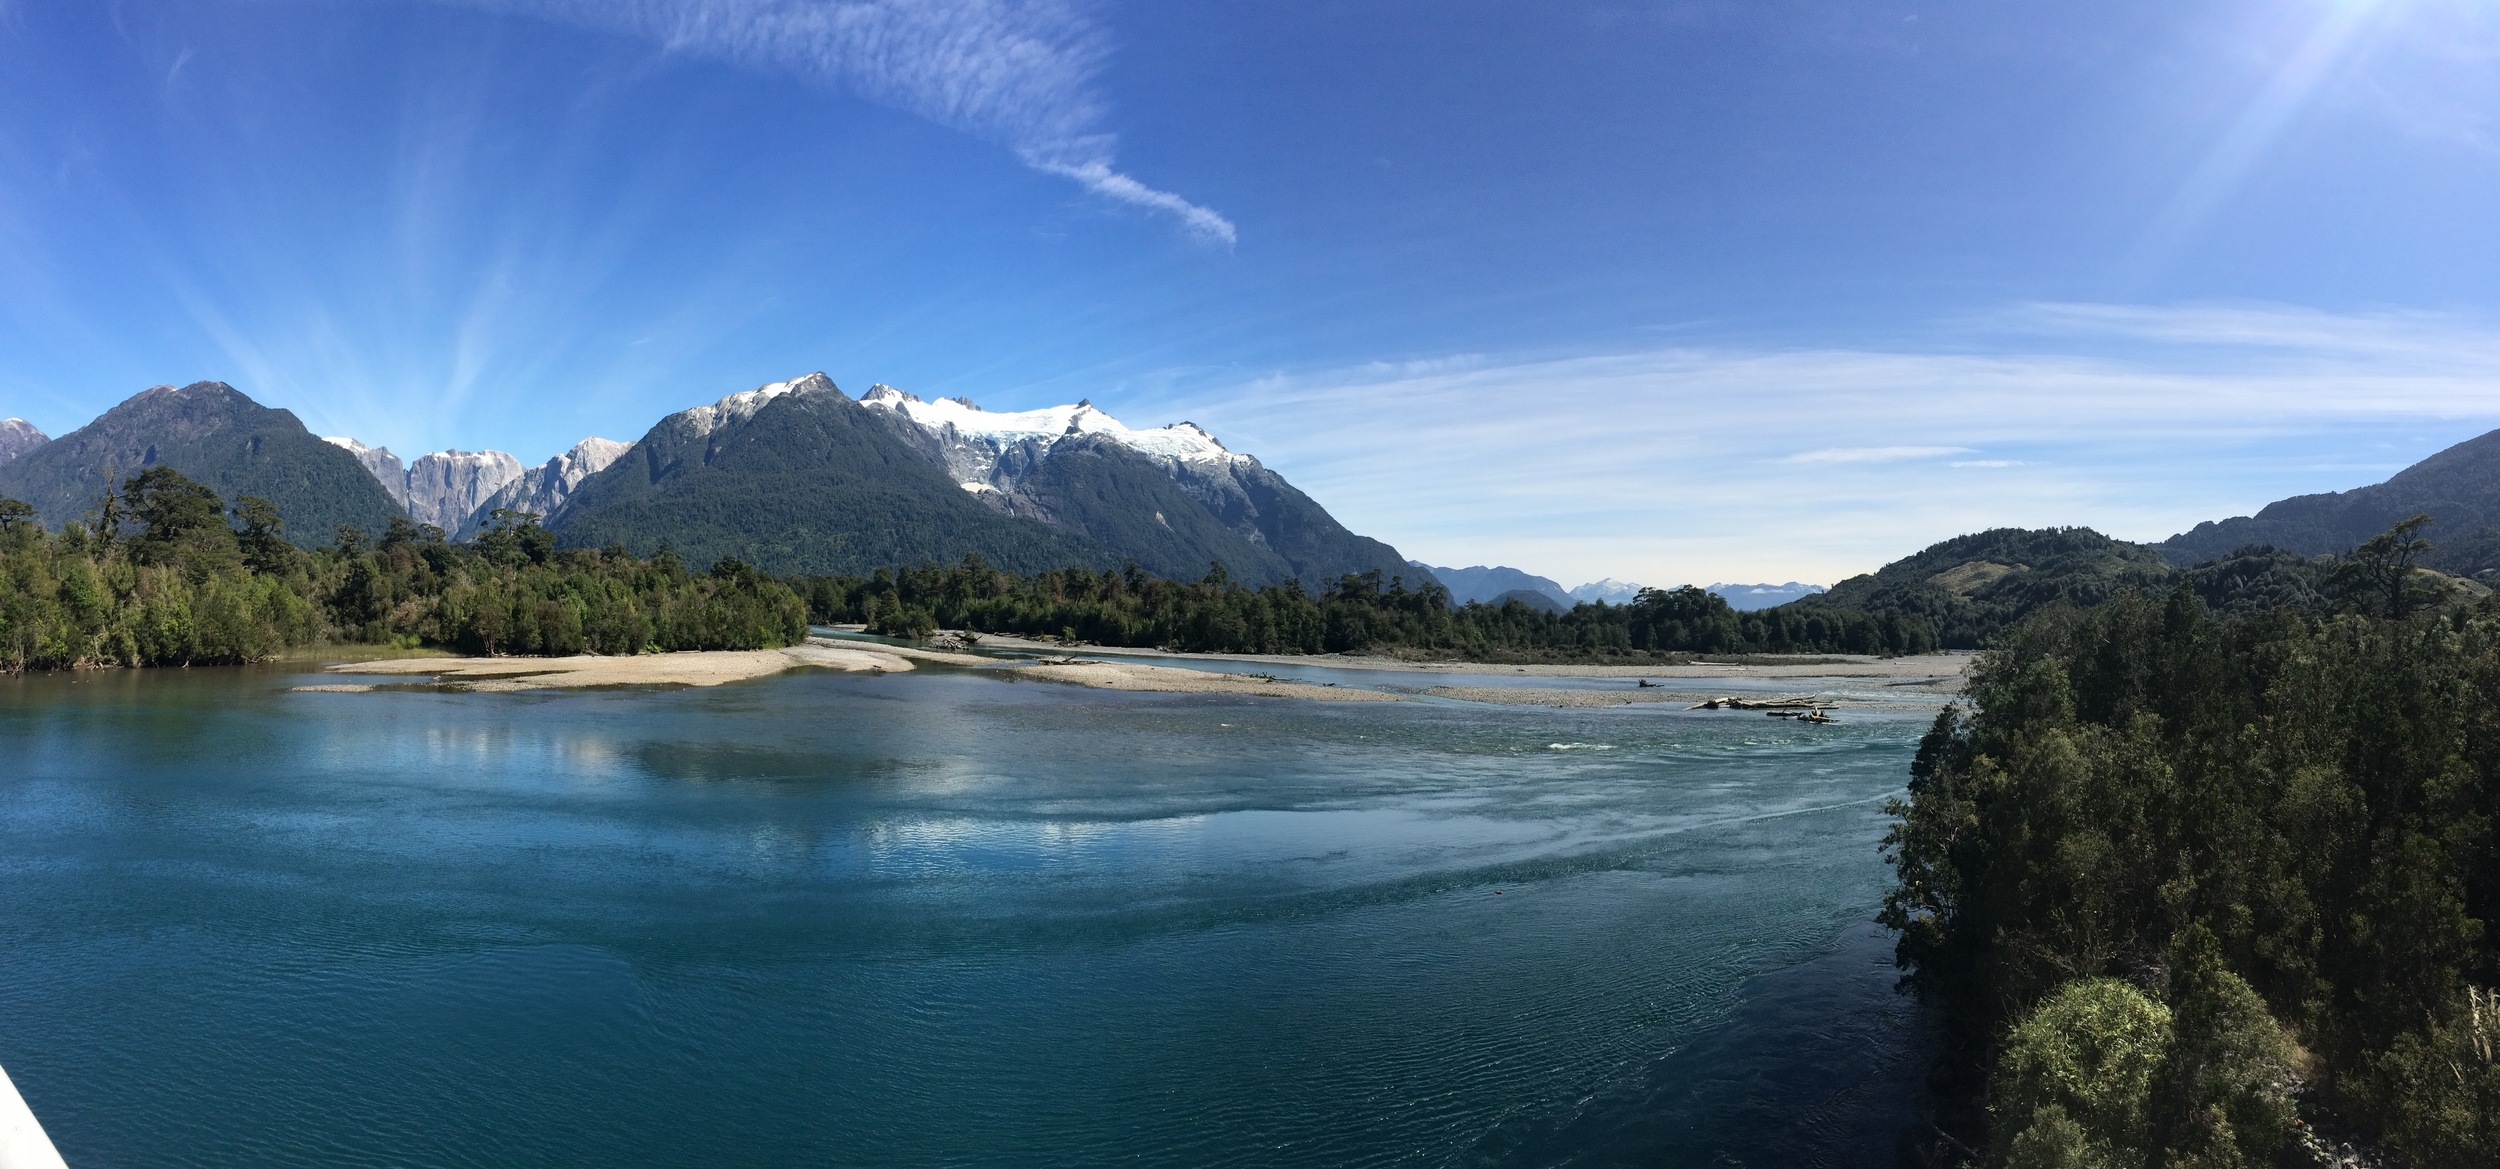 Near the end of our trip up the Carretera Austral